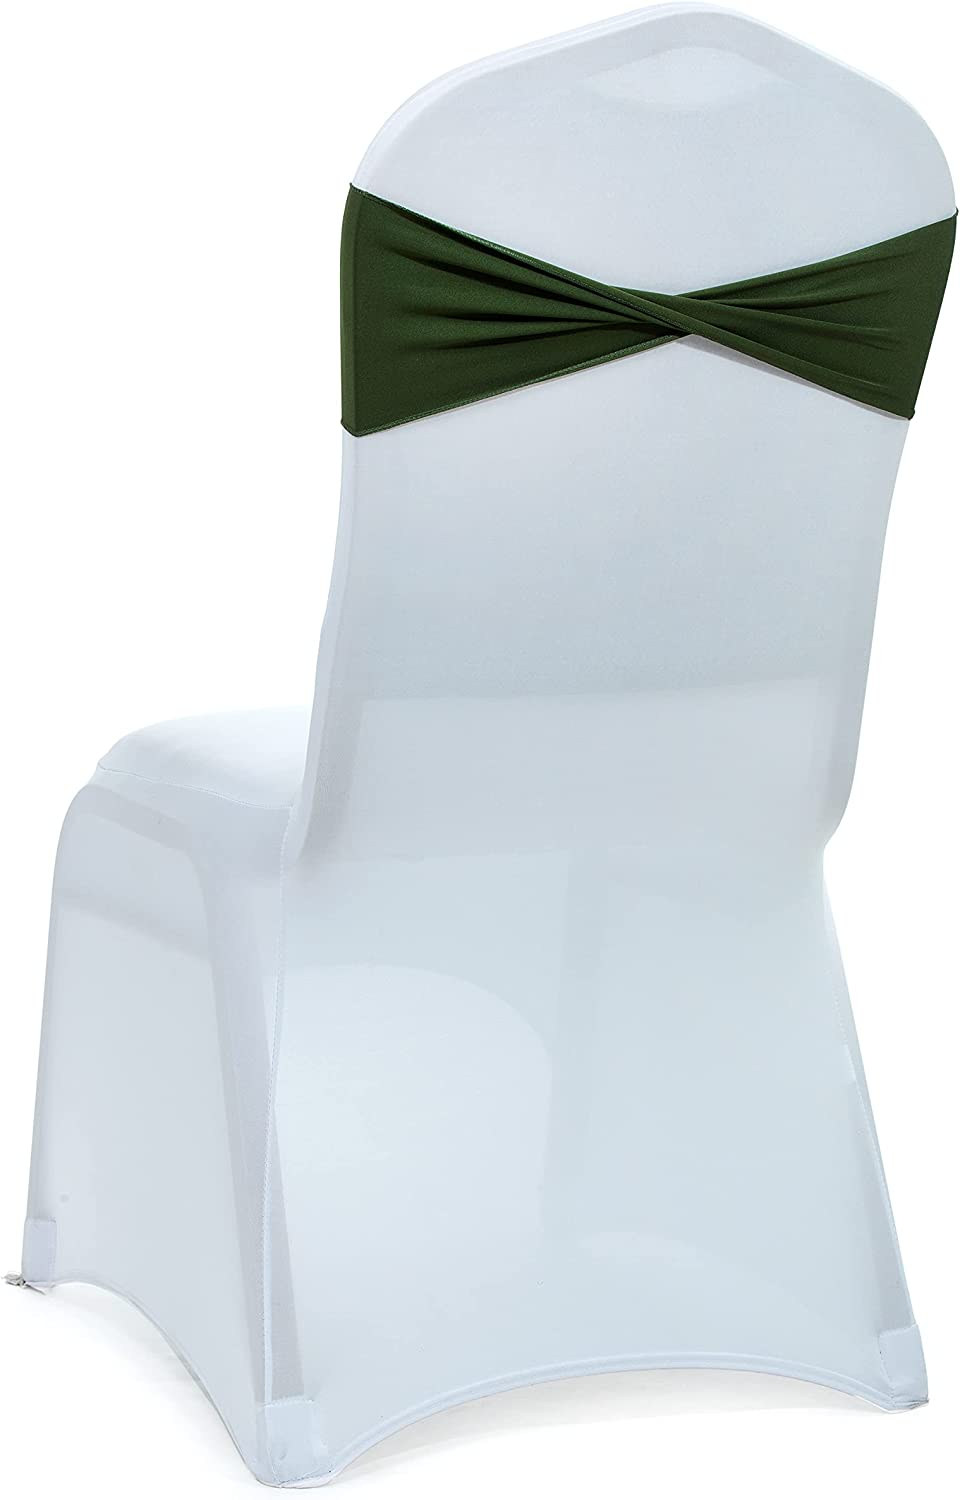 mds Pack of 50 Spandex Chair Max 66% OFF sash Elastic Large special price !! Bands Sashes Bow